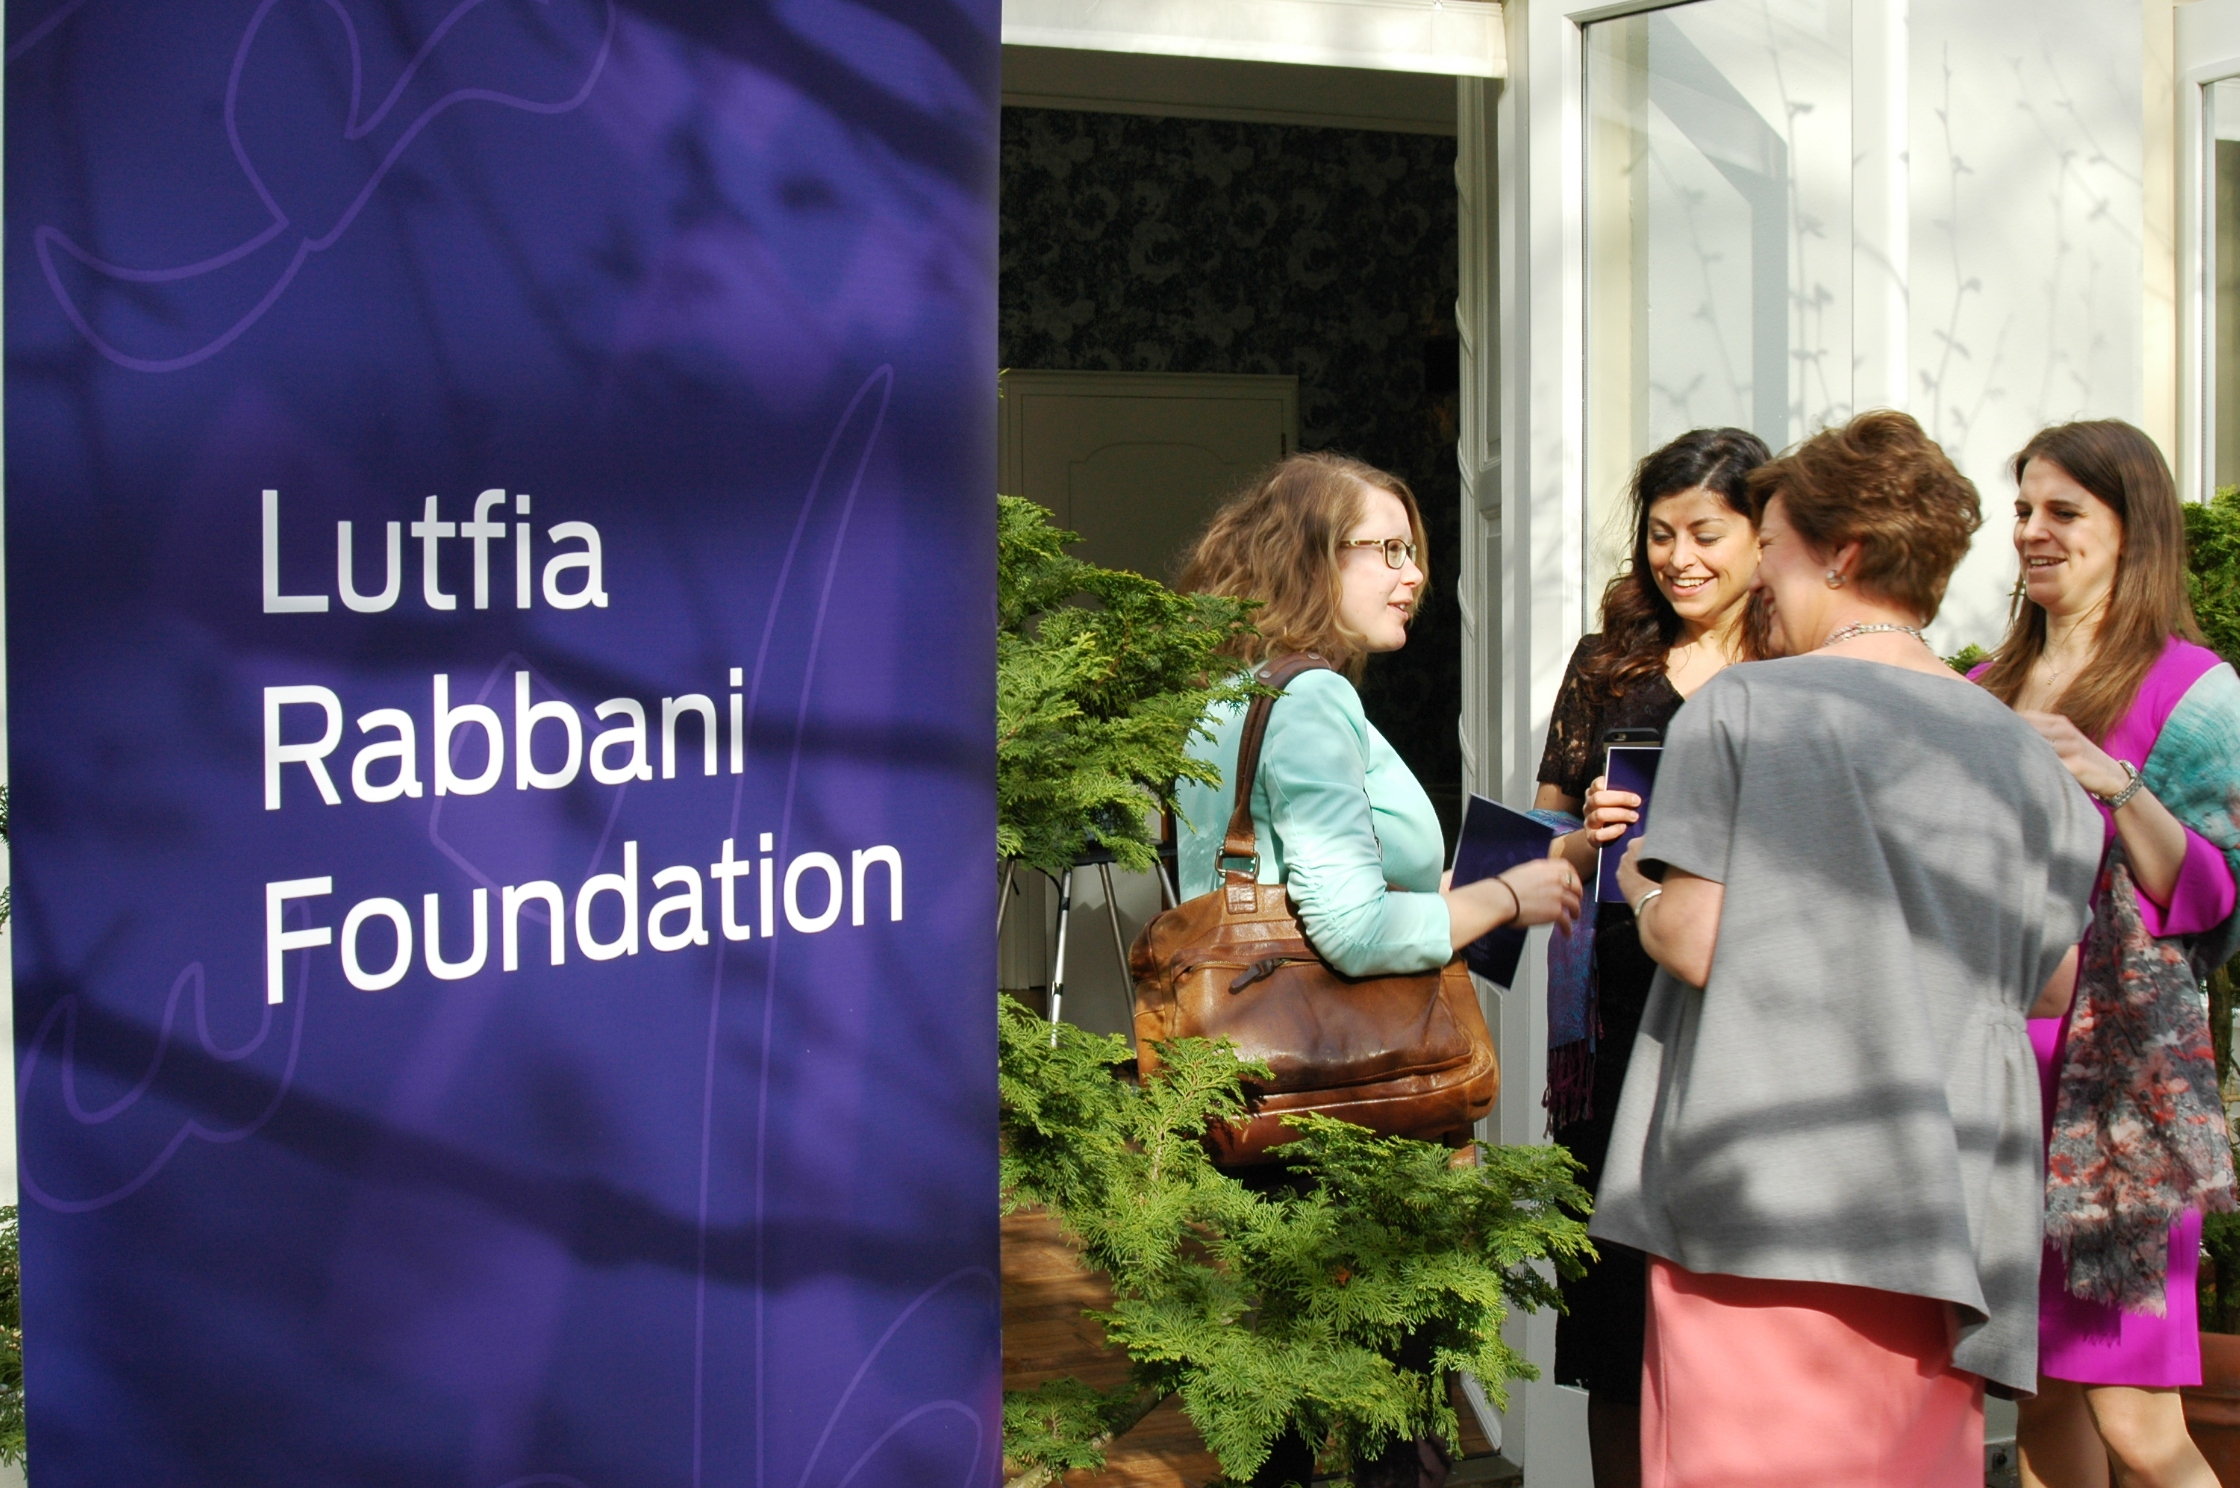 Mahmoud S. Rabbani Scholarship 2020/2021 for Arab and Dutch students (Up to €15,000)